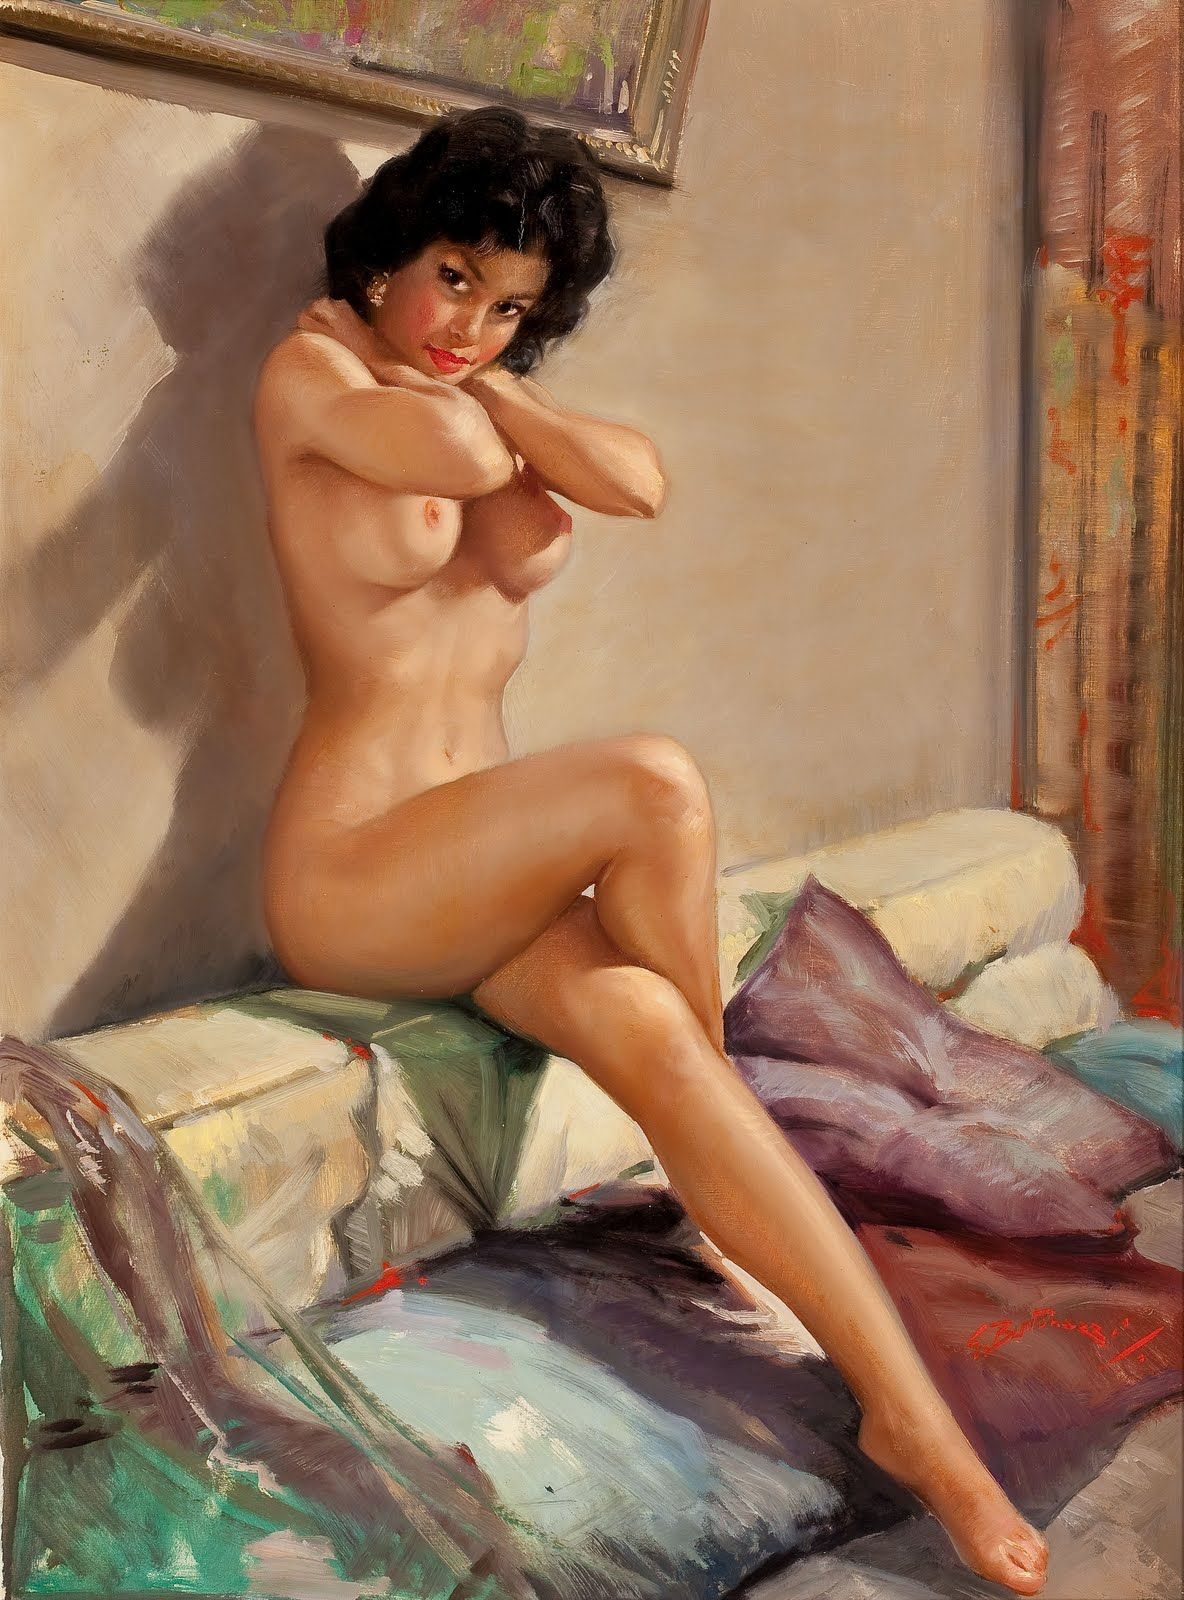 Fantasy Pin Up Girls Nude  Vintage Pin Up Girl  Comics -2221